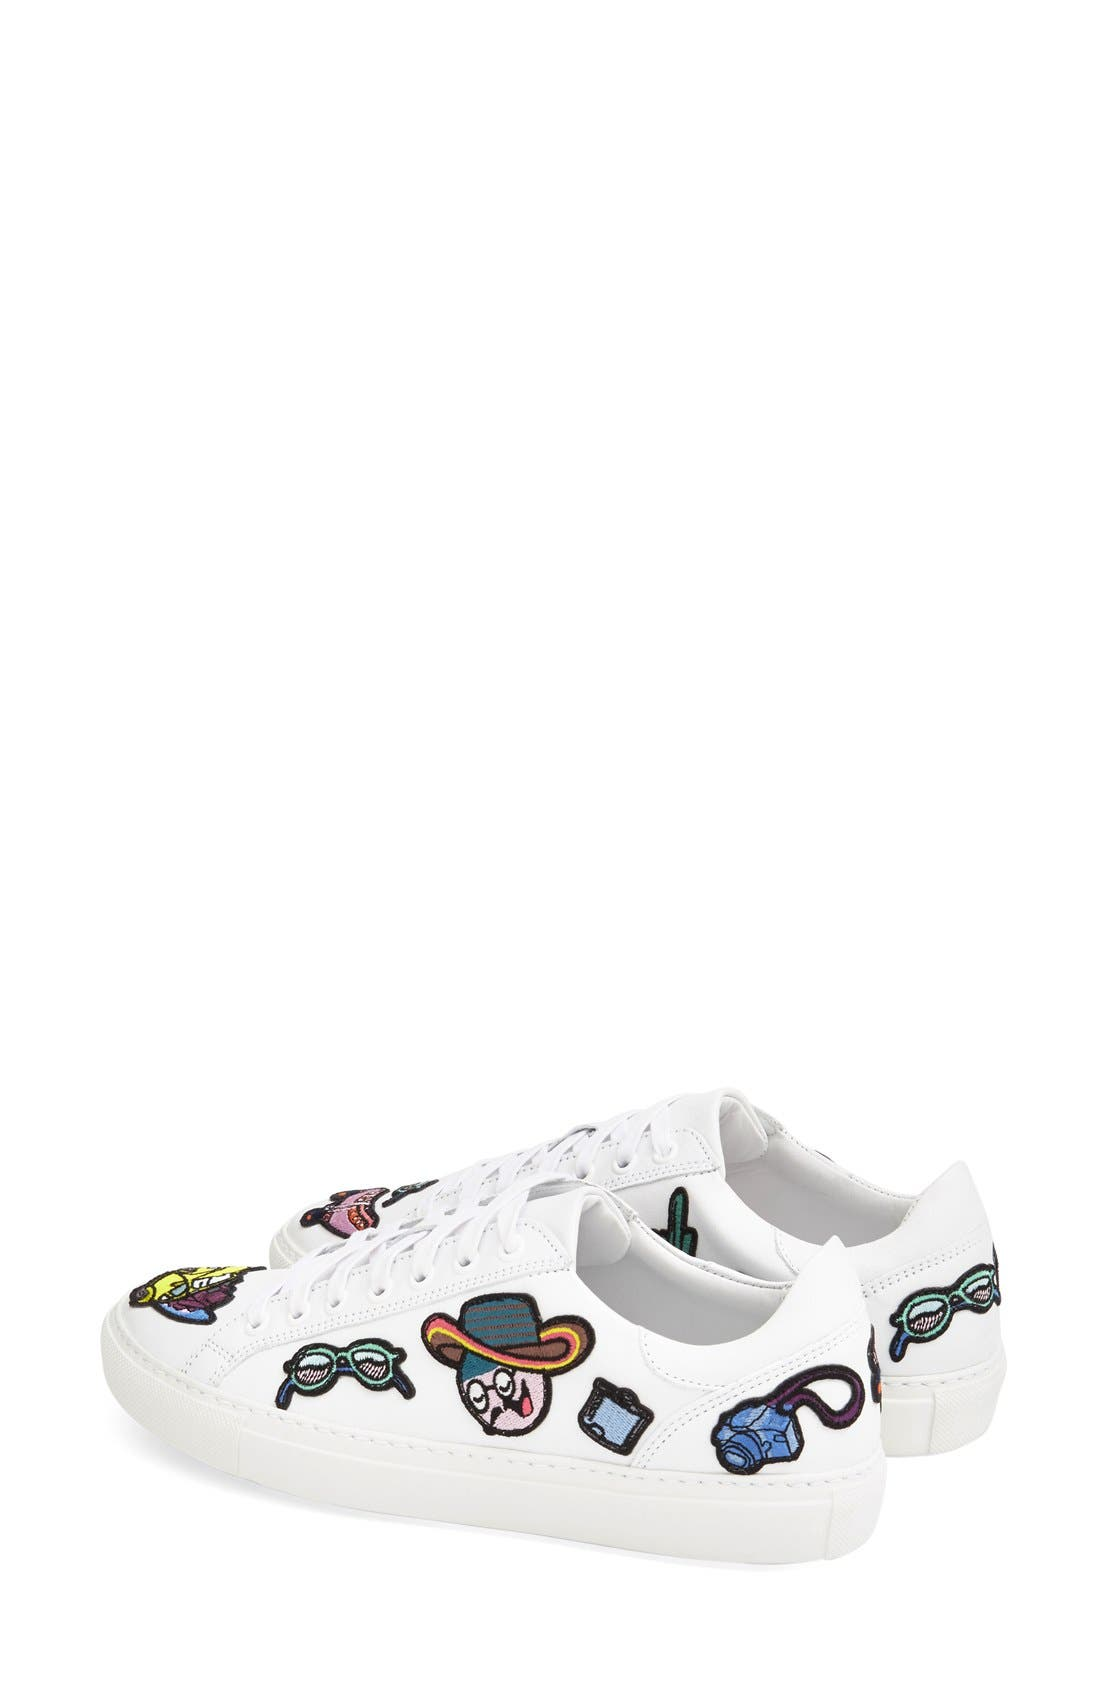 MIRA MIKATI,                             'Patches' Low Top Sneaker,                             Alternate thumbnail 3, color,                             111